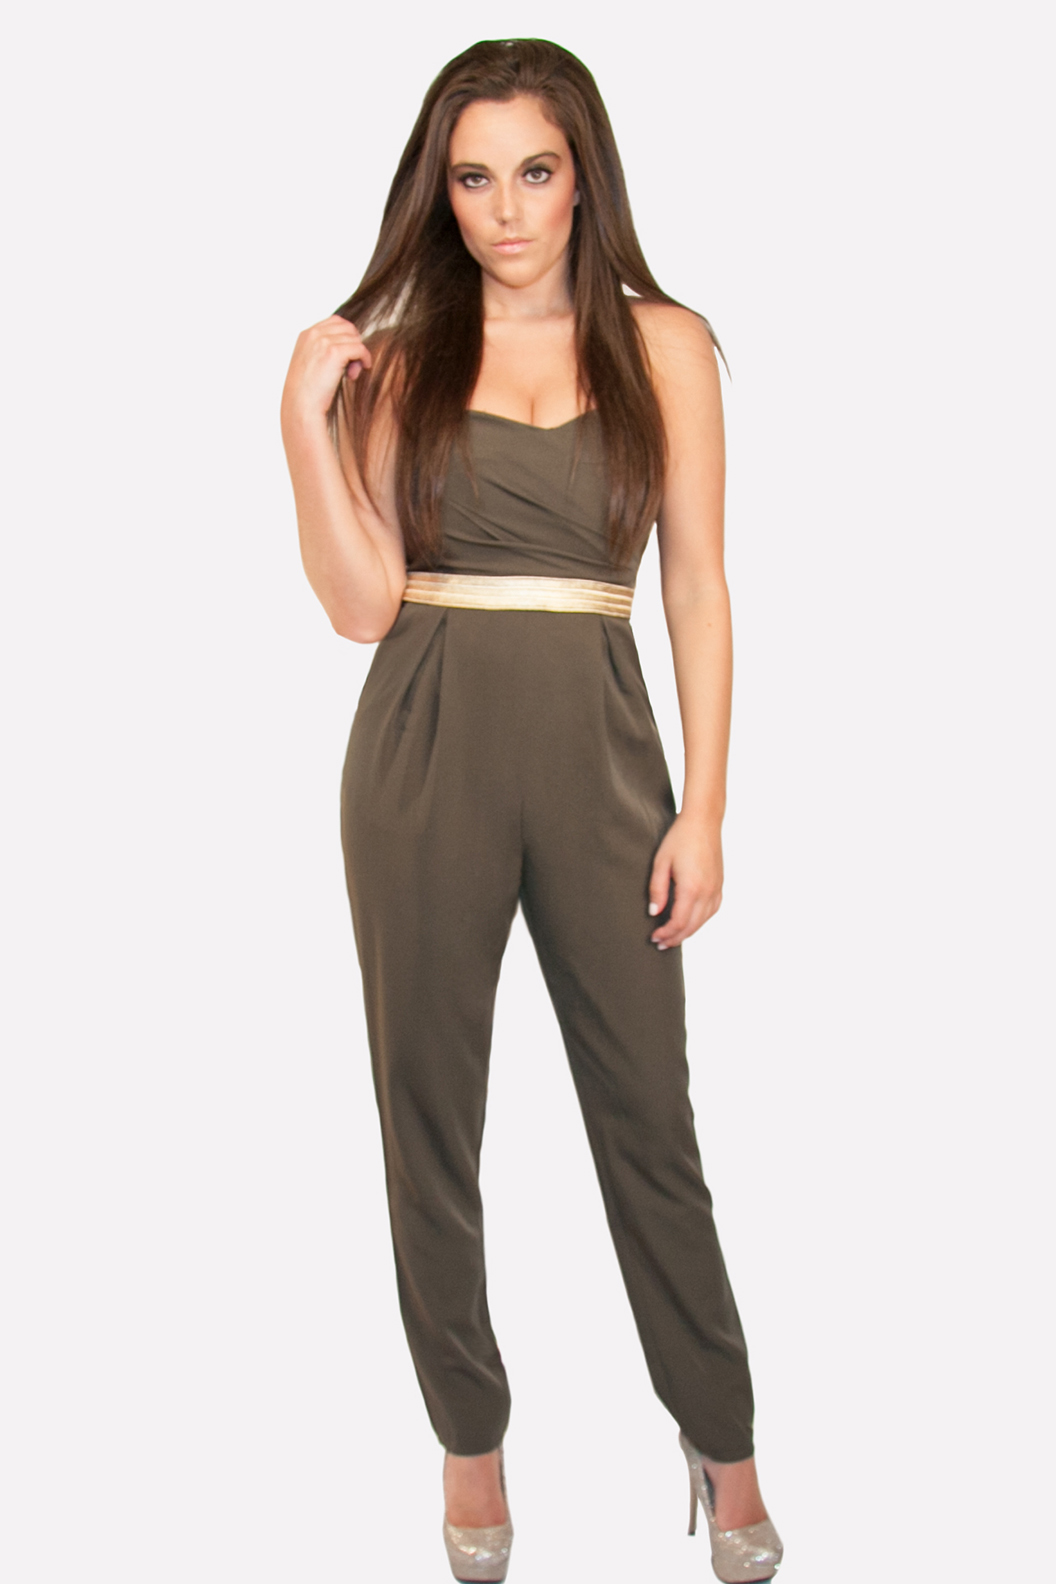 Sexy Jumpsuits | Jumpsuits and Rompers | White Jumpsuits for Women